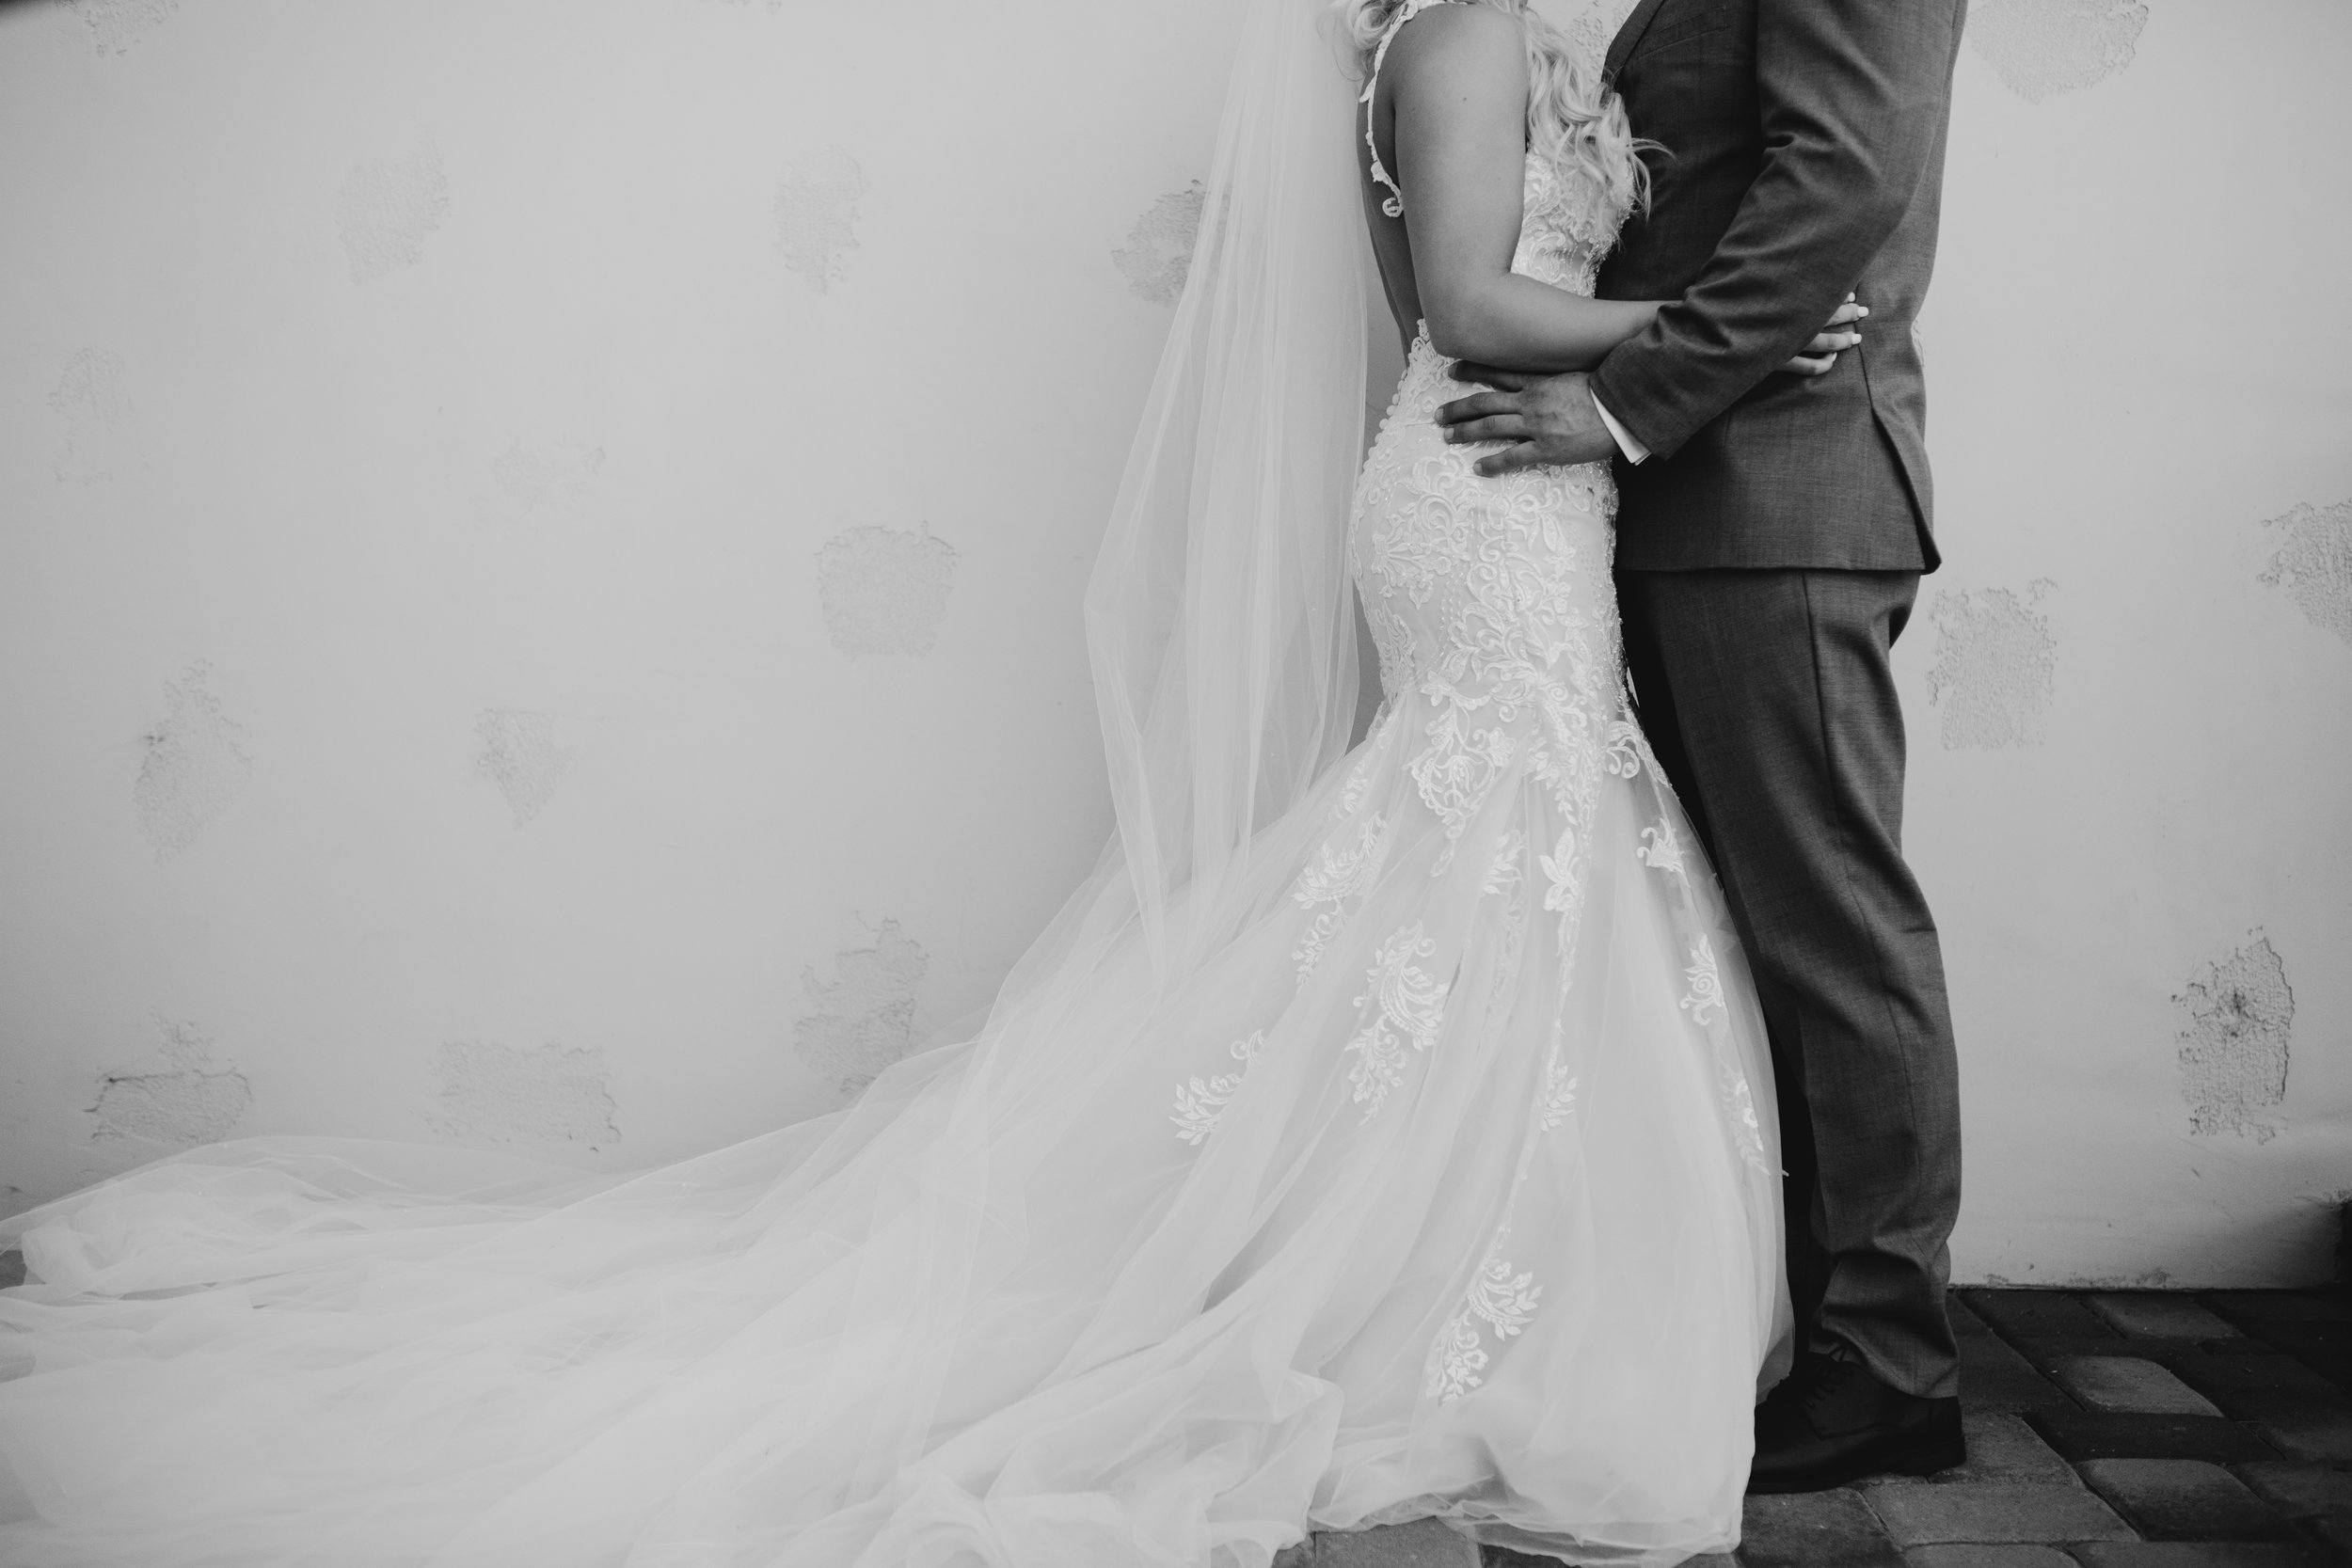 DianaLakePhoto-A+C-Wedding-Mr+Mrs_24.jpg